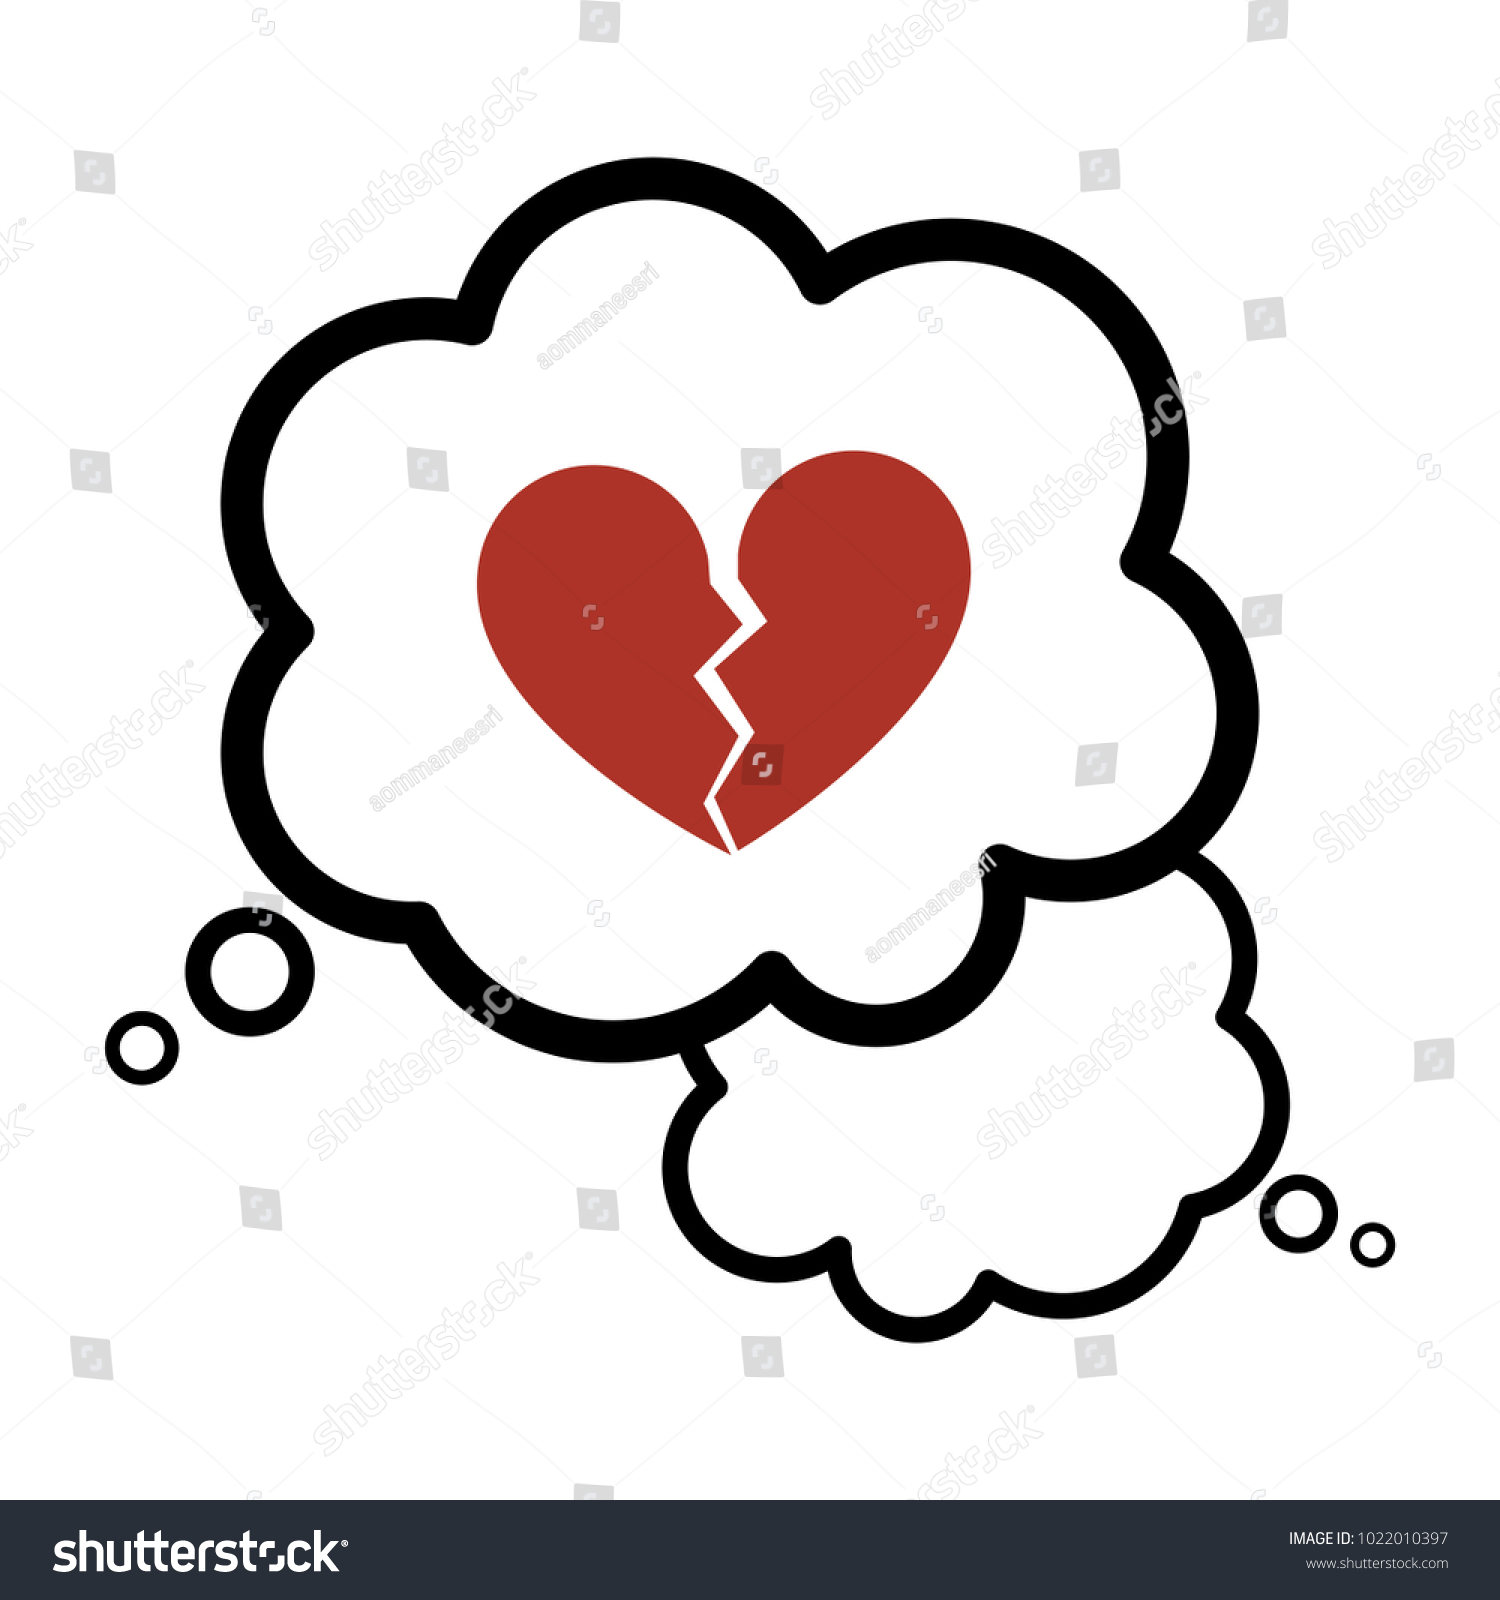 Broken heart thought bubble icon broken stock vector 1022010397 broken heart in a thought bubble icon broken heart in a dream bubble symbol icon biocorpaavc Choice Image